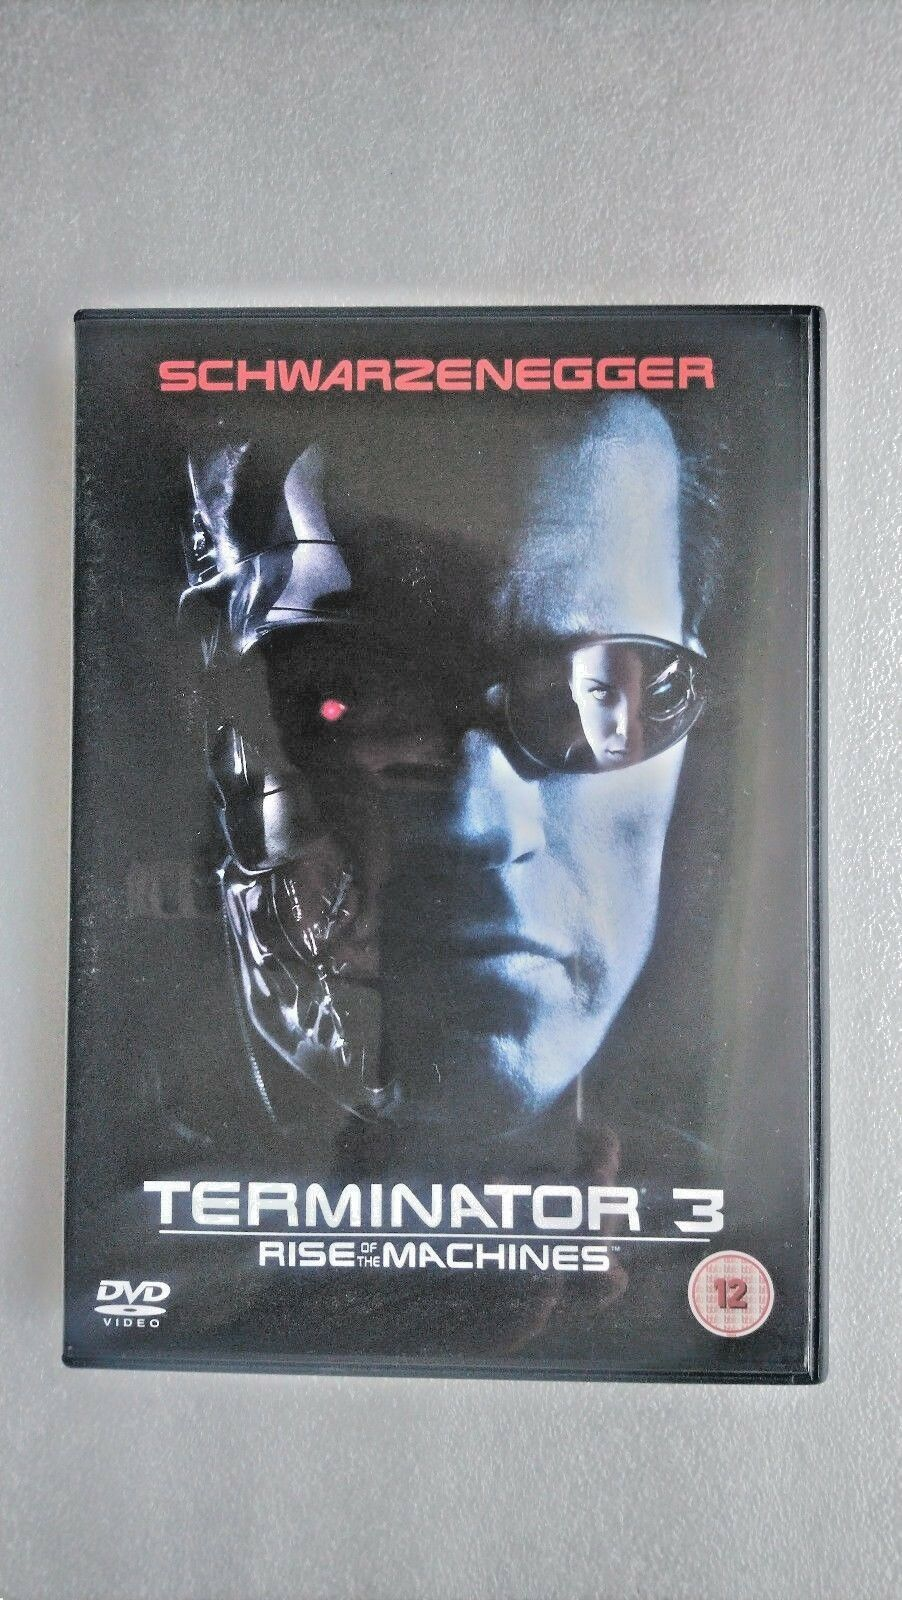 Terminator 3 - Rise Of The Machines (DVD, 2003, 2-Disc Set)